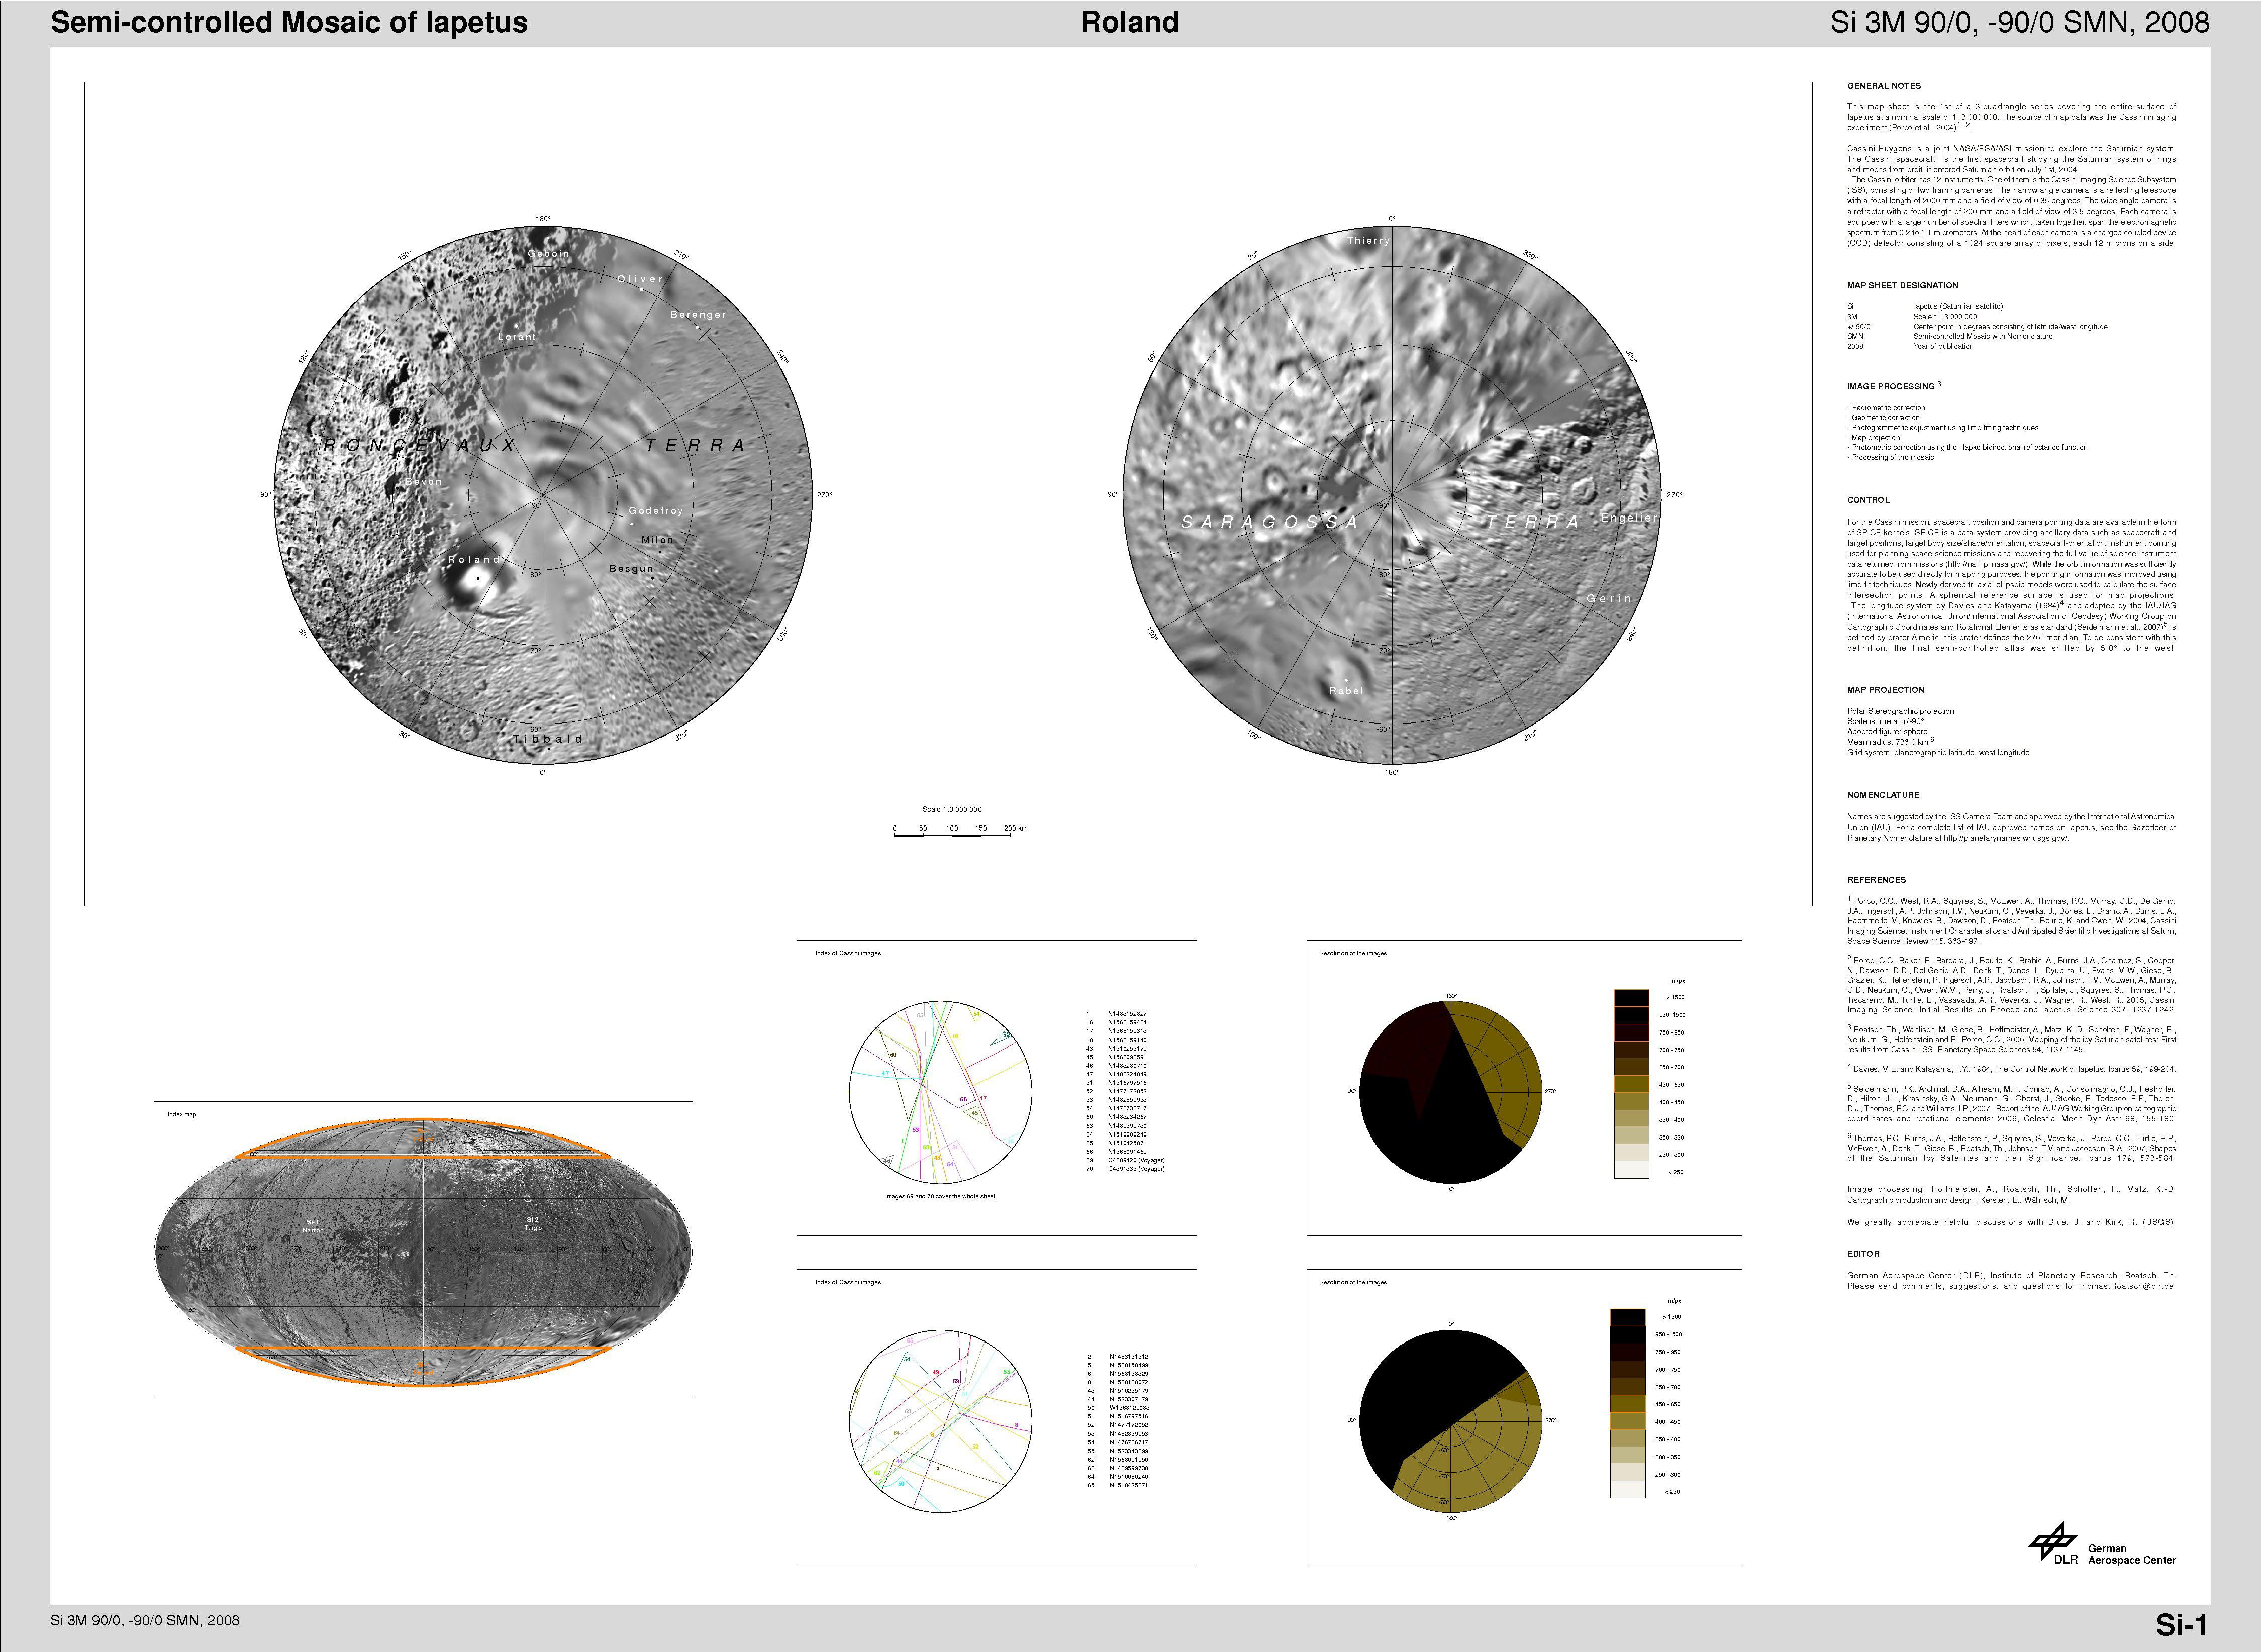 Cartographic map sheets of Iapetus